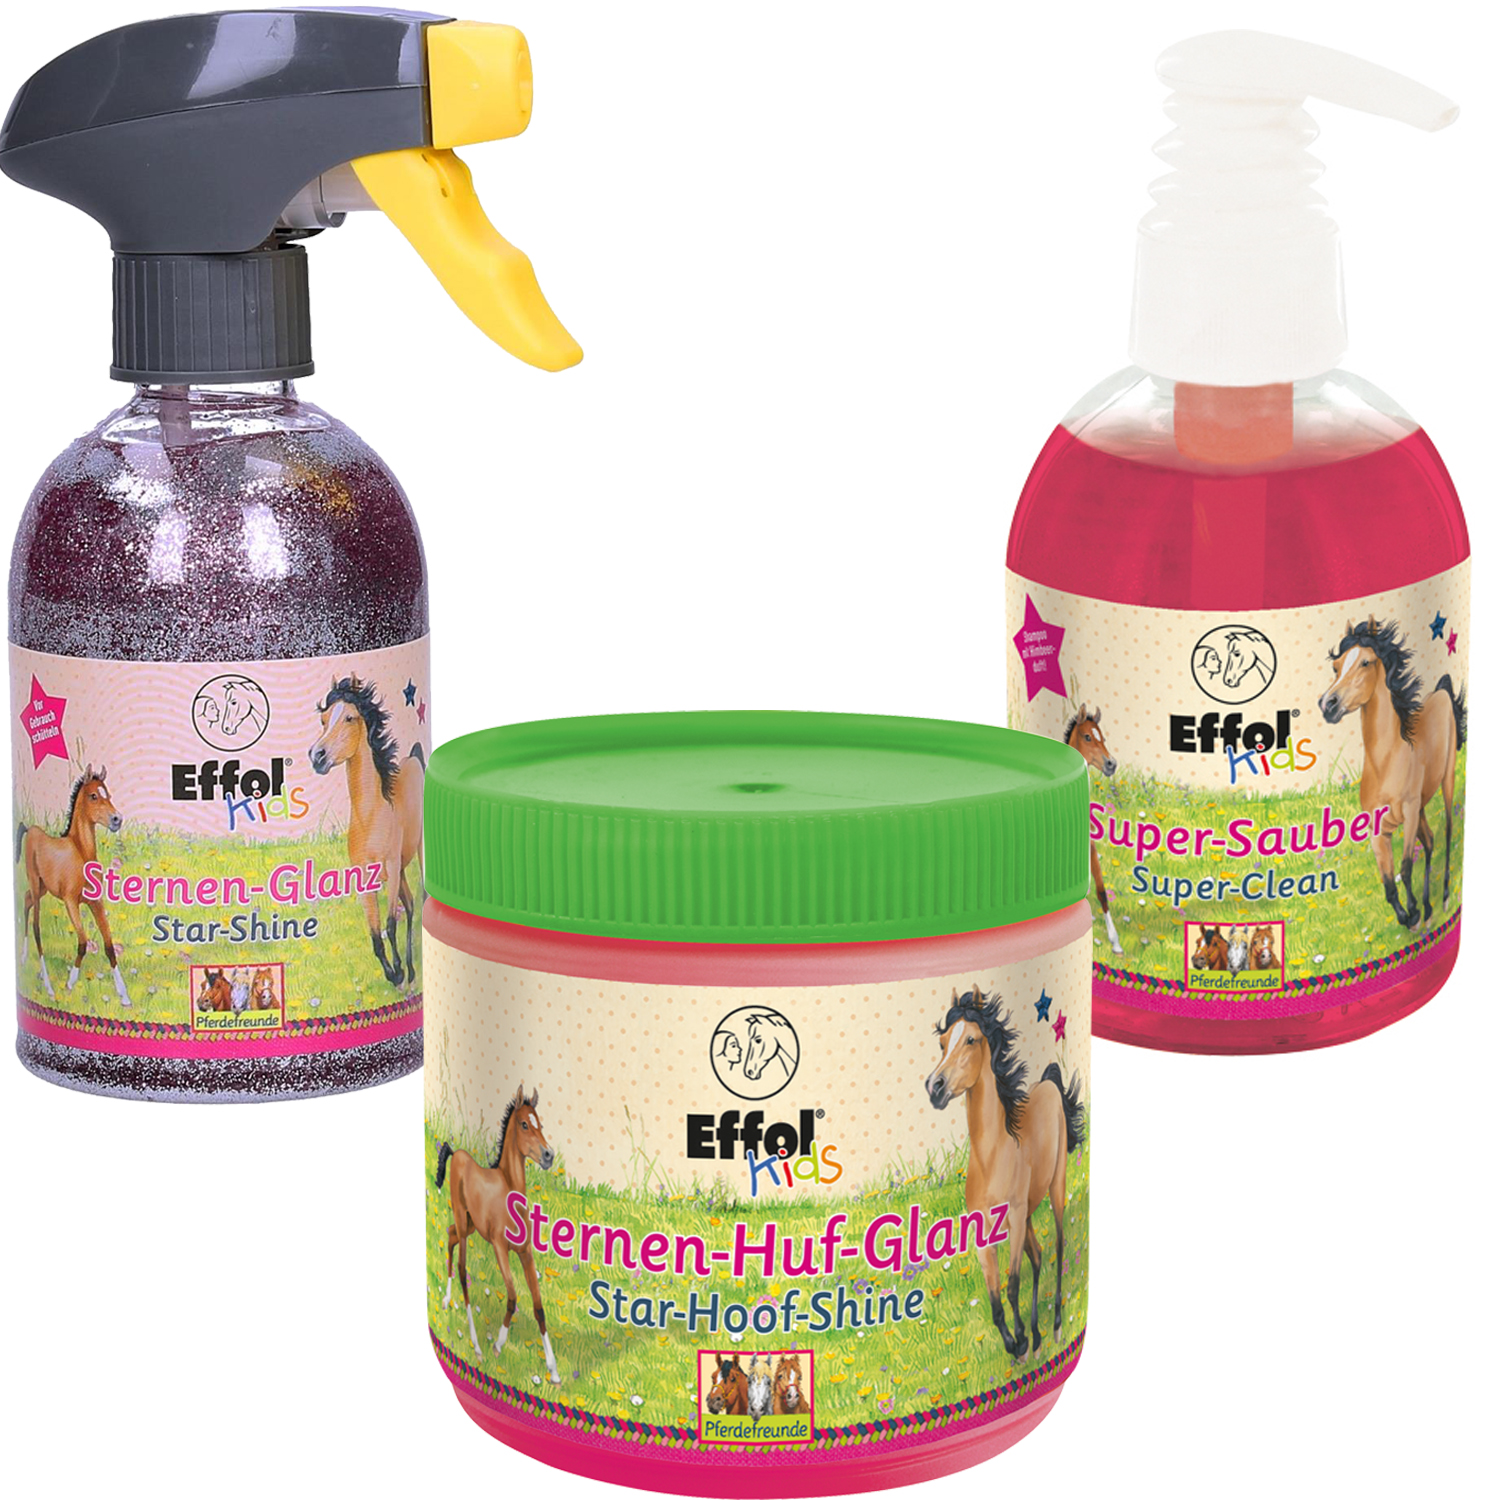 3er Set Effol Kids Sternen- Huf-Glanz, Super-Sauber, Sternenglanz Spray je 300ml